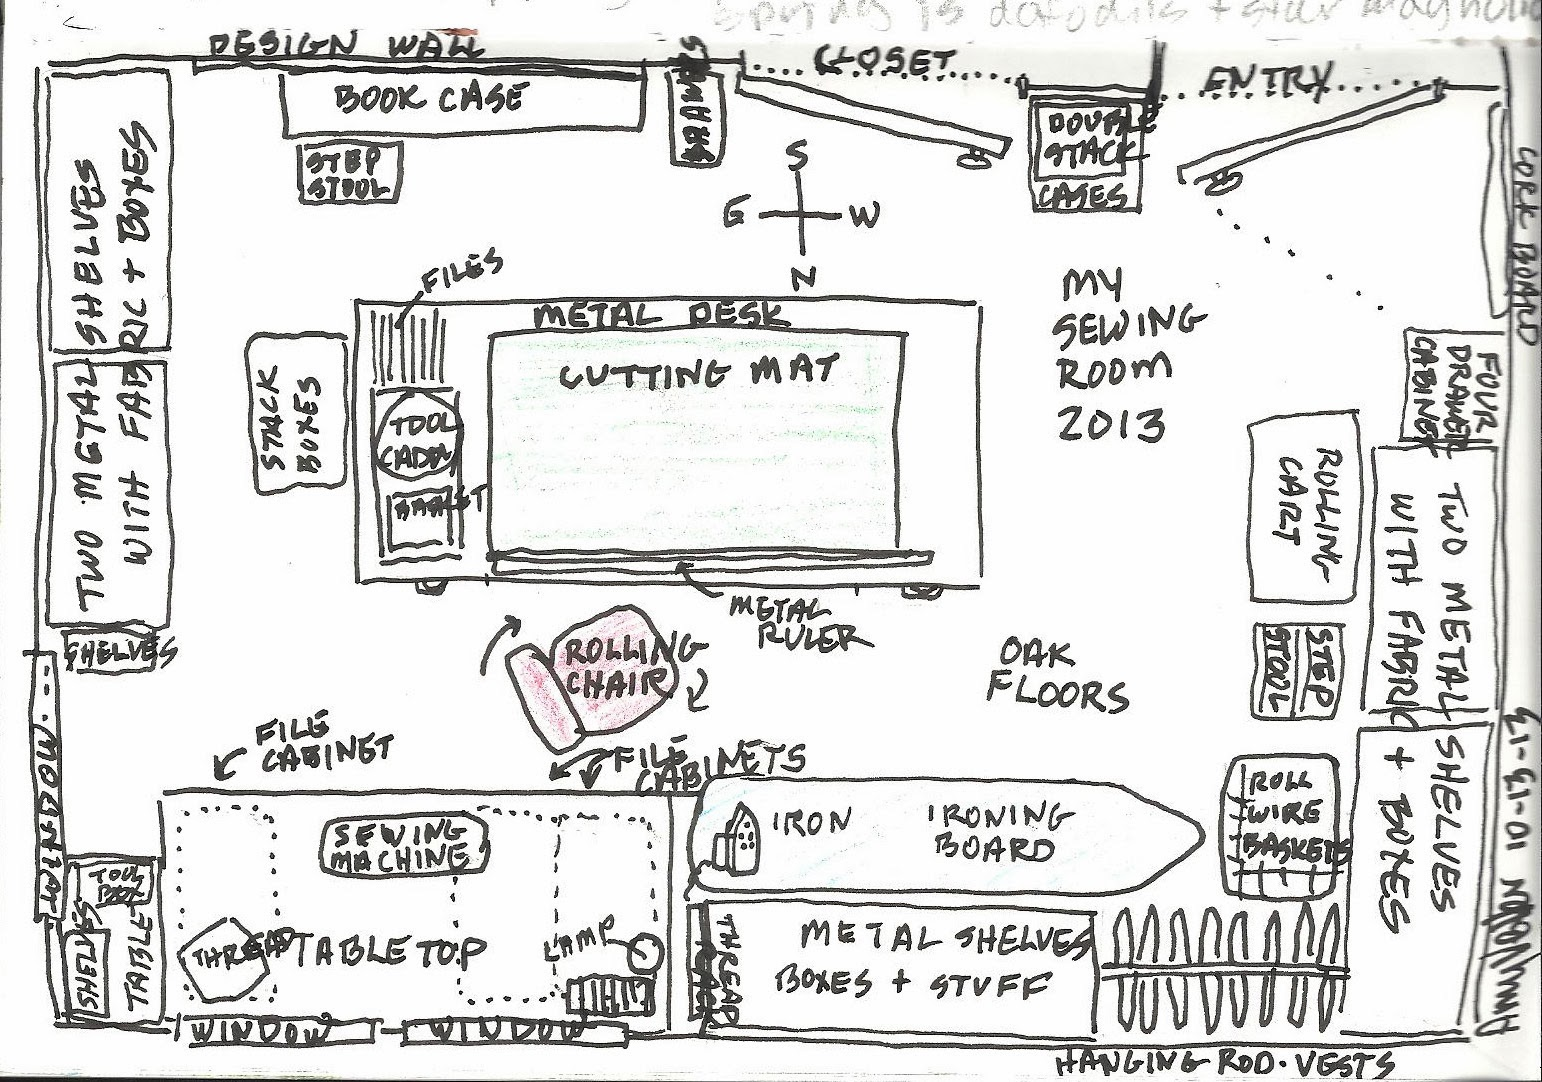 Amy 39 s etcetera sewing room diagram for Sewing room layout